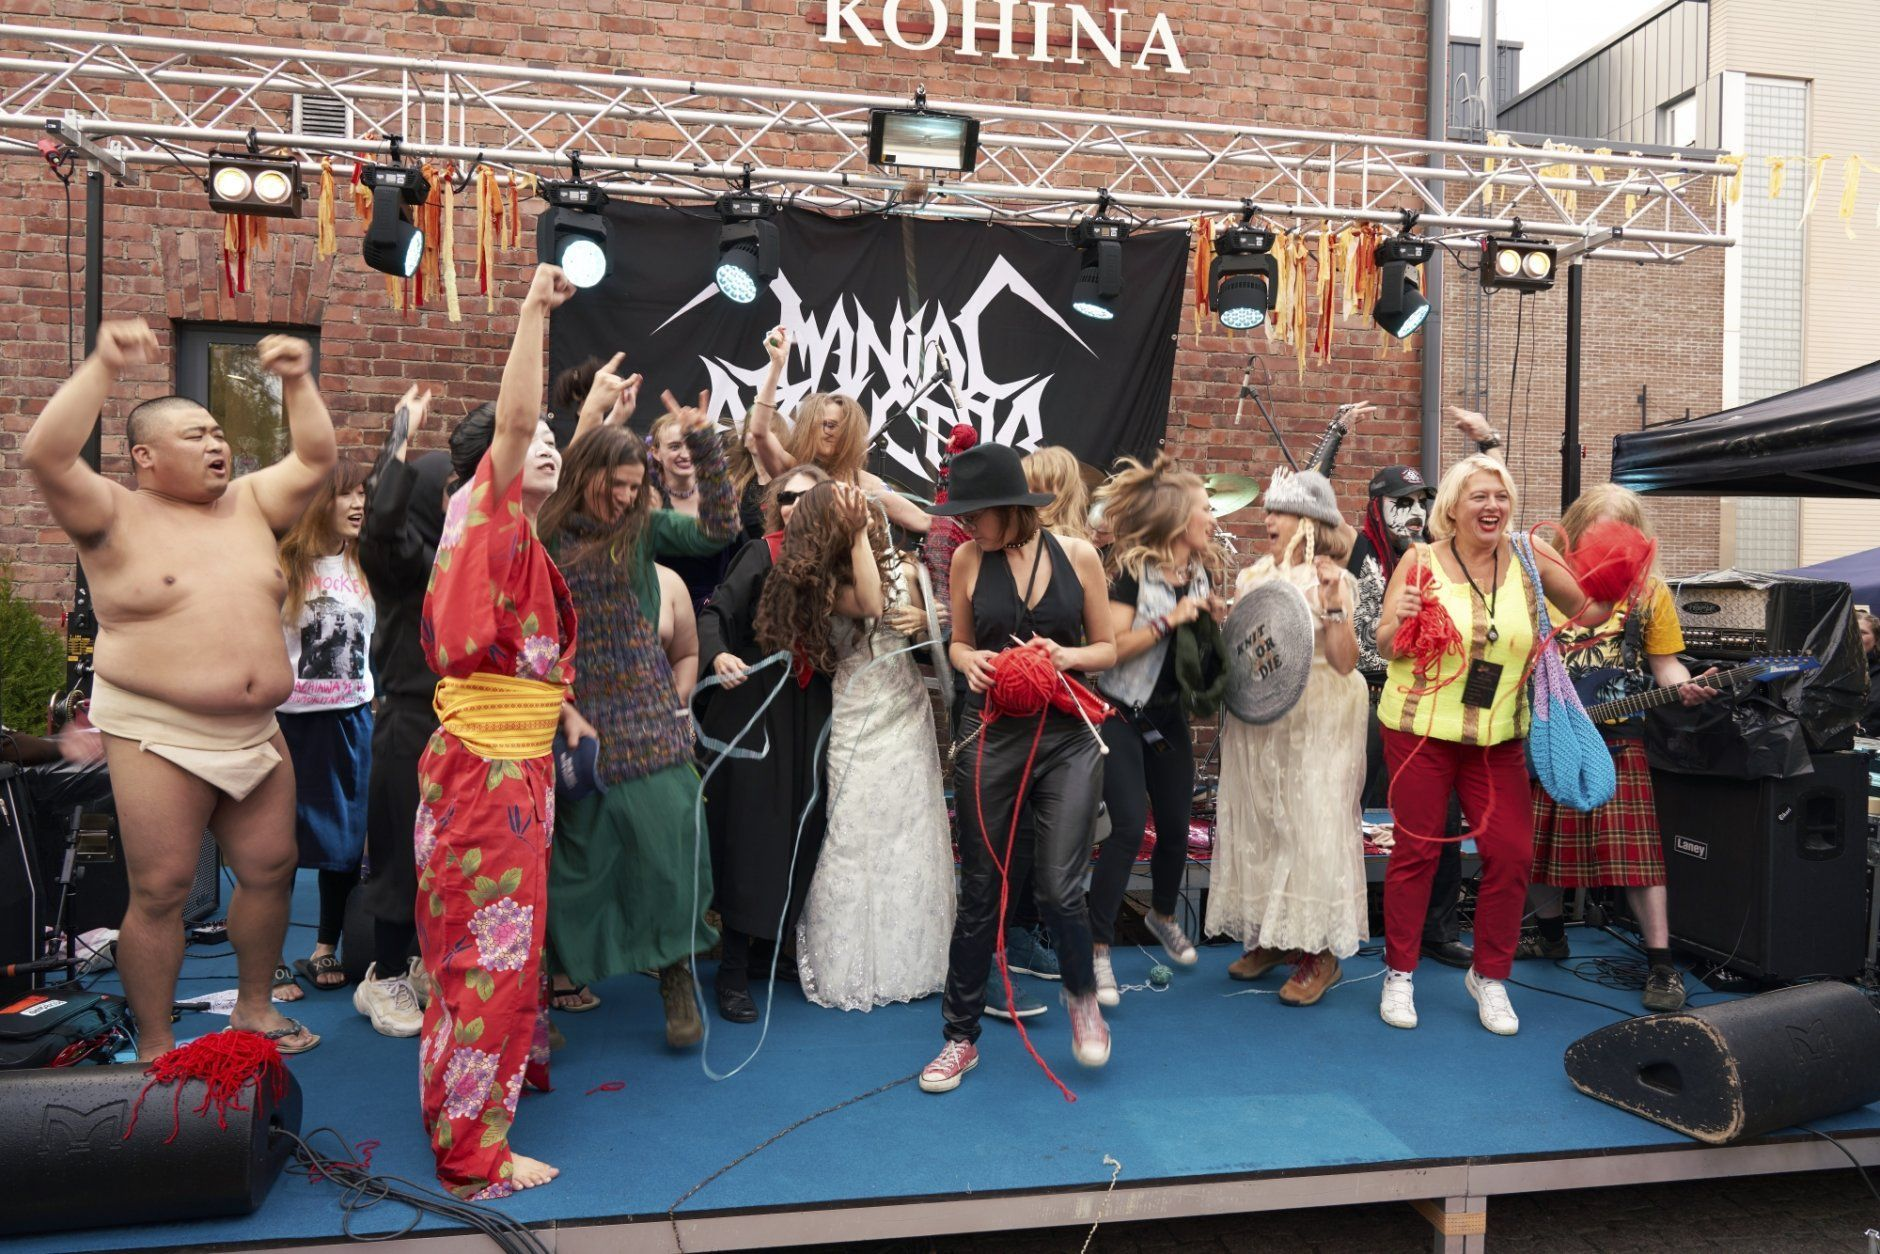 """The competitors of the first Heavy Metal Knitting world championship react on stage, Thursday, July 11, 2019 in Joensuu, Finland. With stage names such as 'Woolfumes,' 'Bunny Bandit' and '9"""" Needles,' the goal was quite simple: to showcase their knitting skills whilst dancing to heavy metal music in the most outlandish way possible. (AP Photo/David Keyton)"""